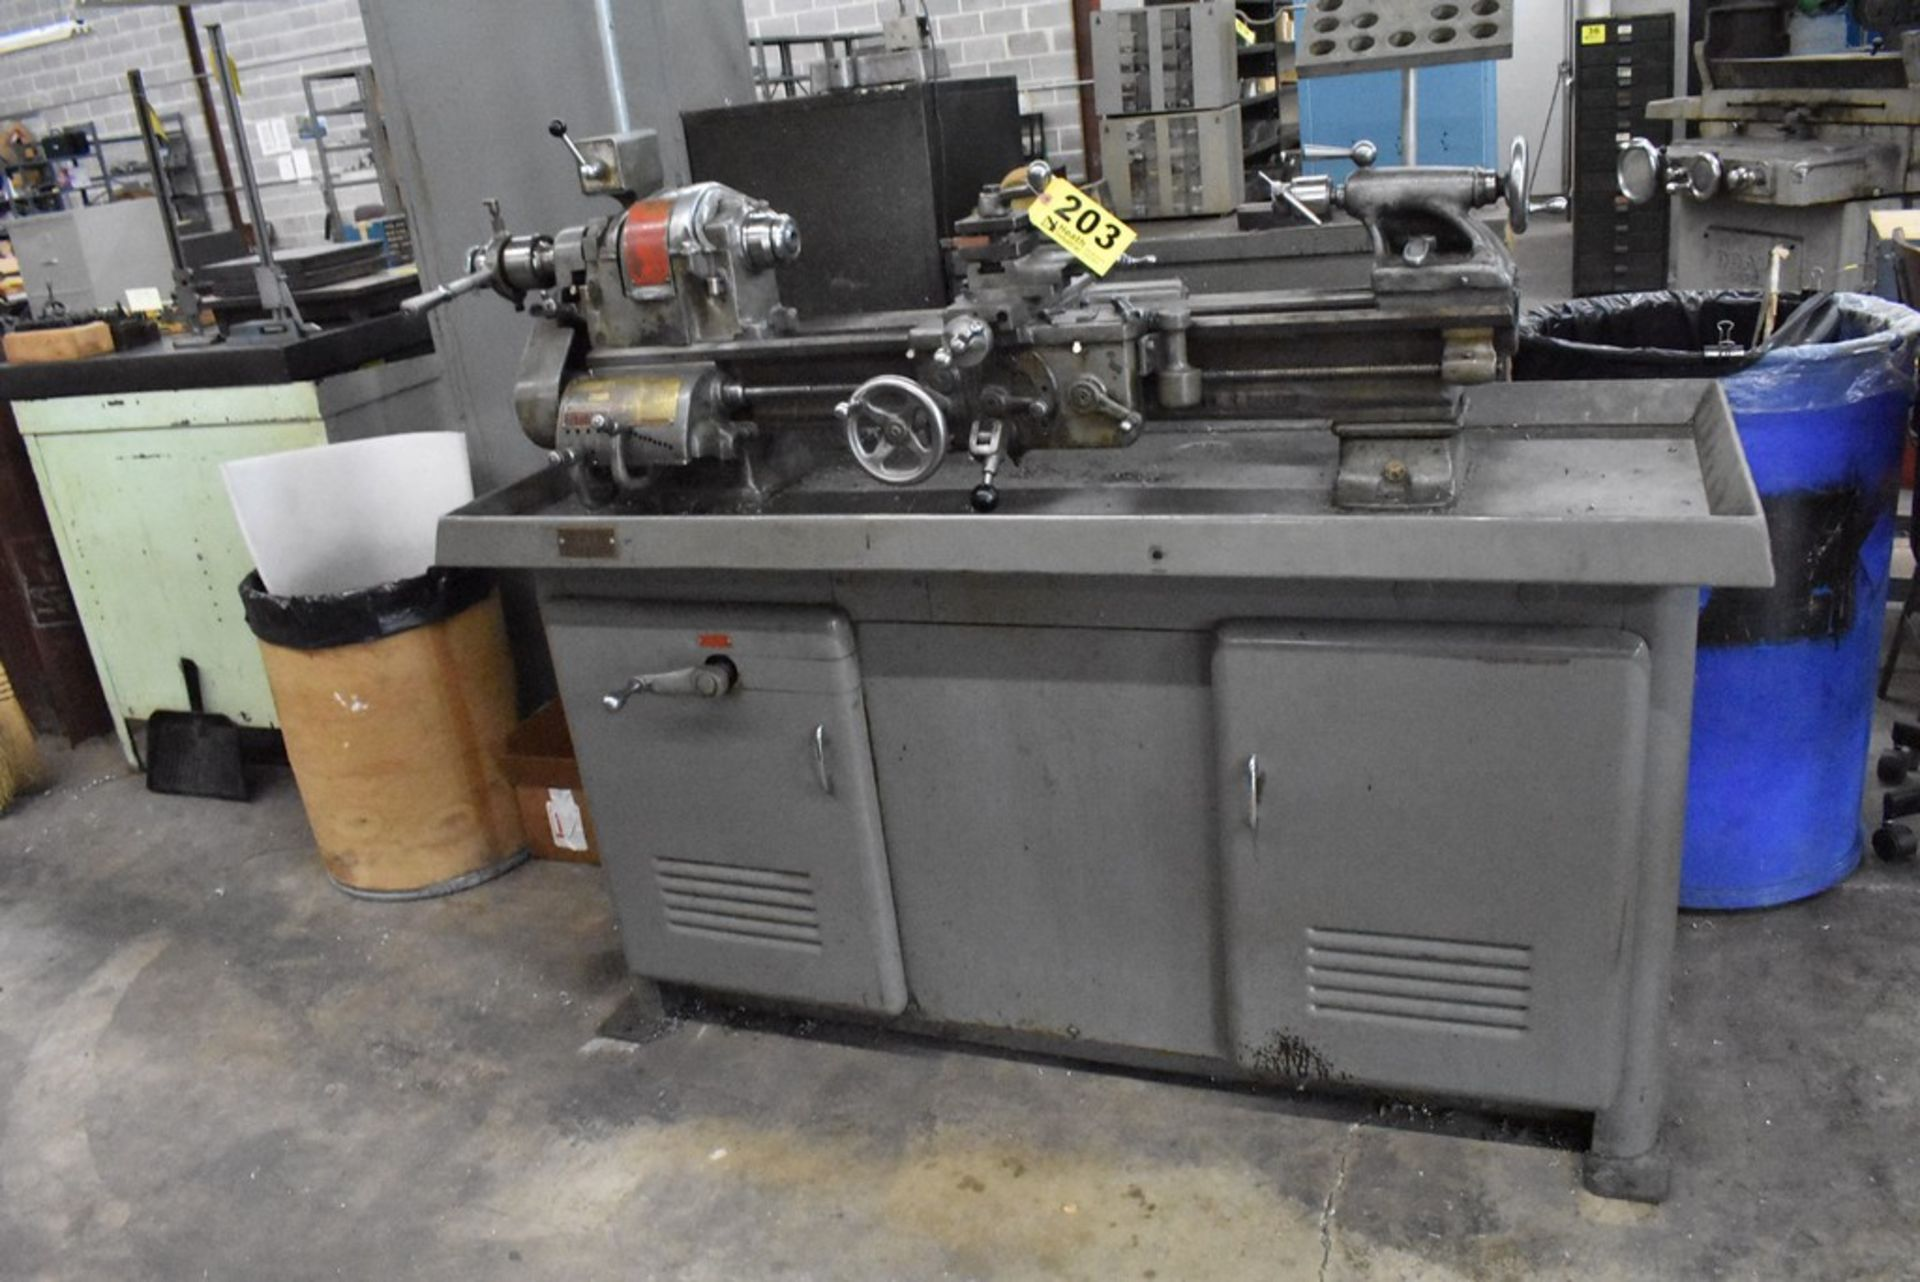 """SOUTH BEND 10""""X30"""" CABINET BASE TOOL ROOM LATHE, S/N 16711RKX12, WITH COLLET CLOSER, 4-WAY TOOL - Image 3 of 13"""